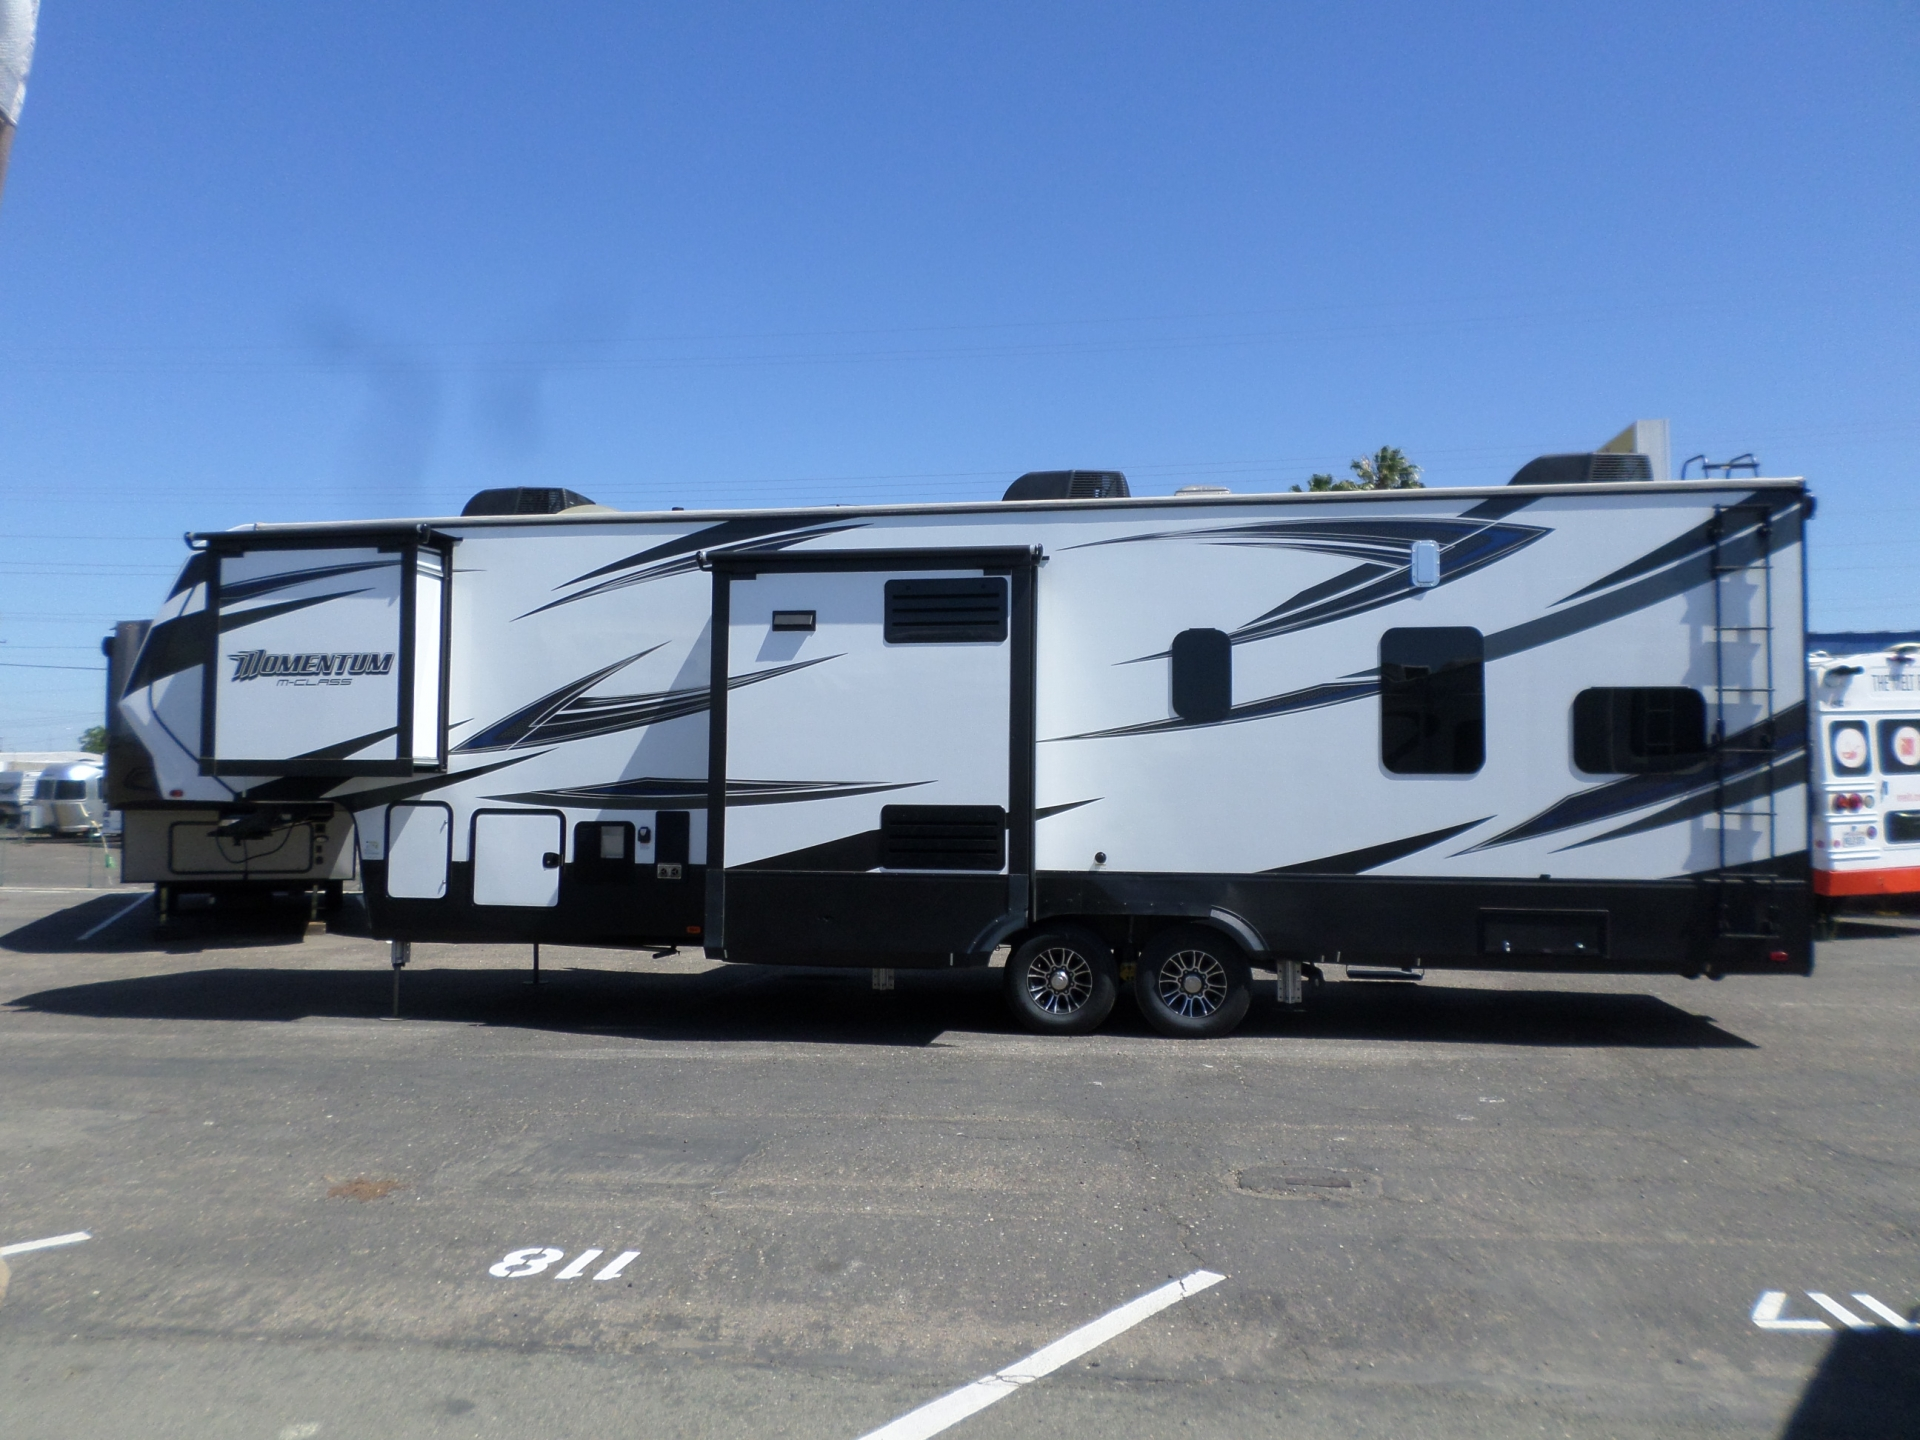 2017 Grand Design Momentum M350 5th Wheel Toy hauler